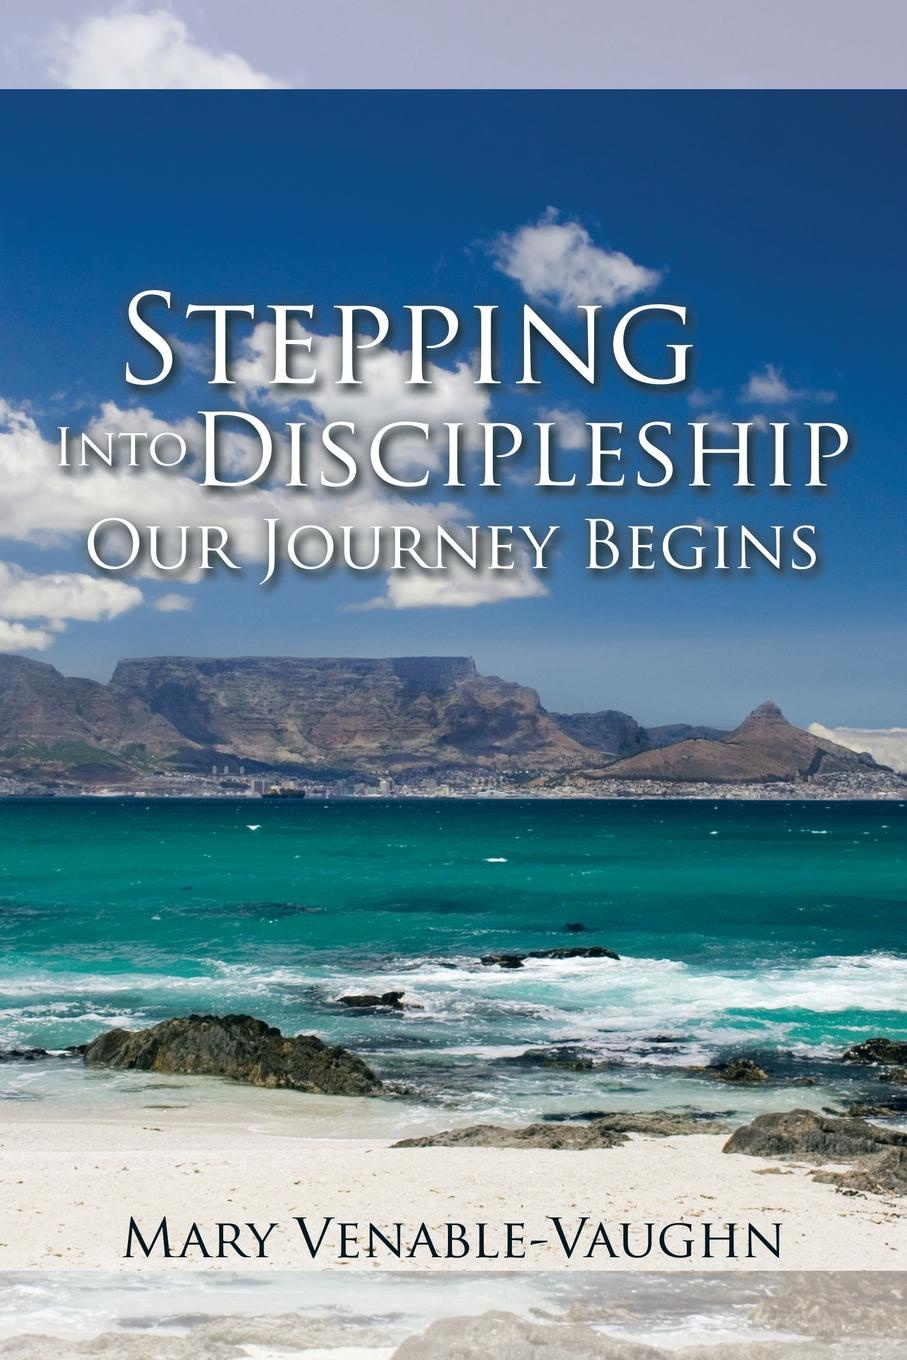 Mary Venable-Vaughn Stepping Into Discipleship - Our Journey Begins